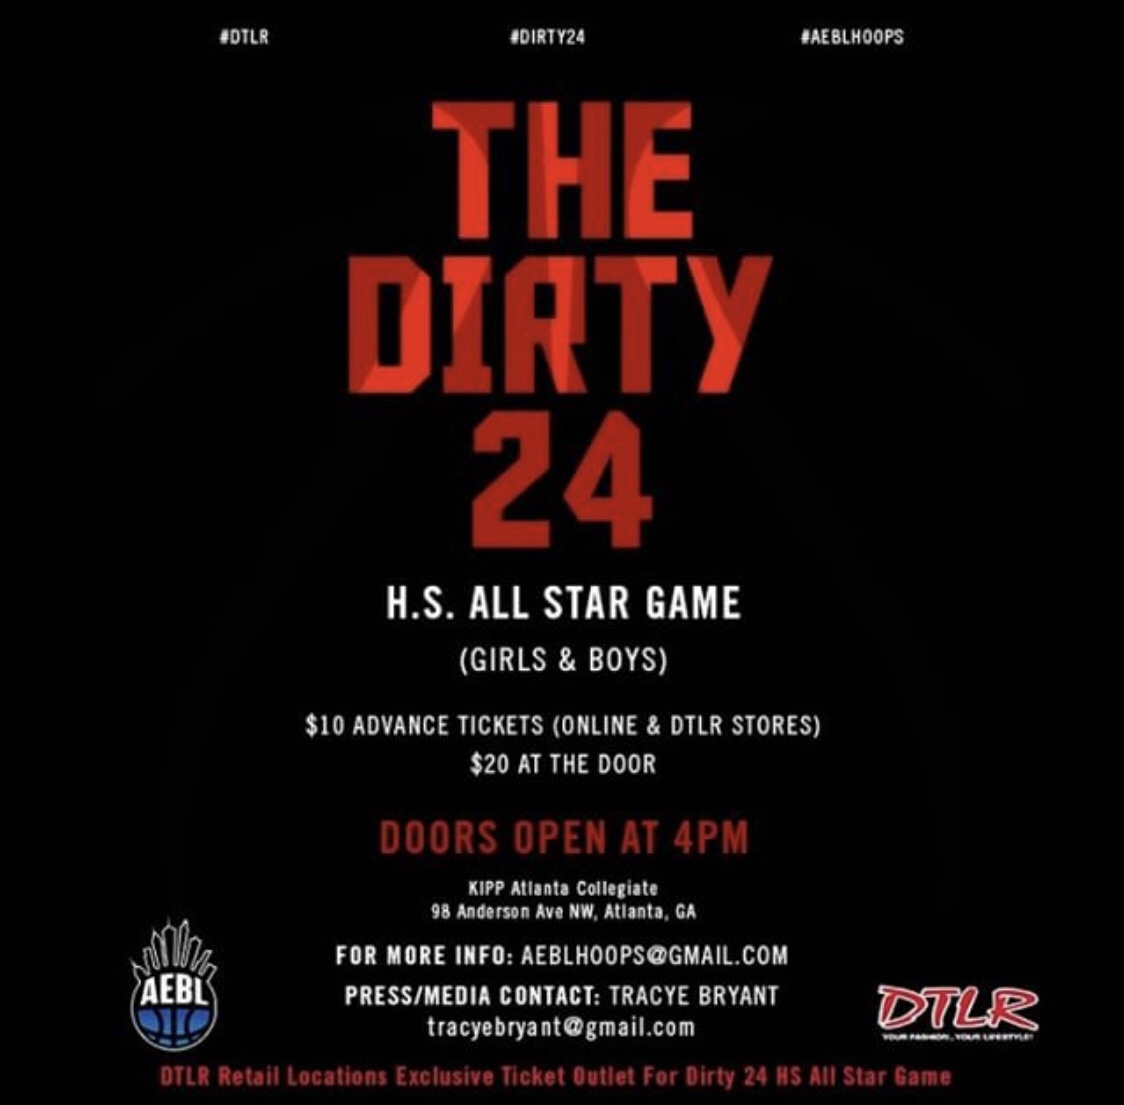 The Dirty 24